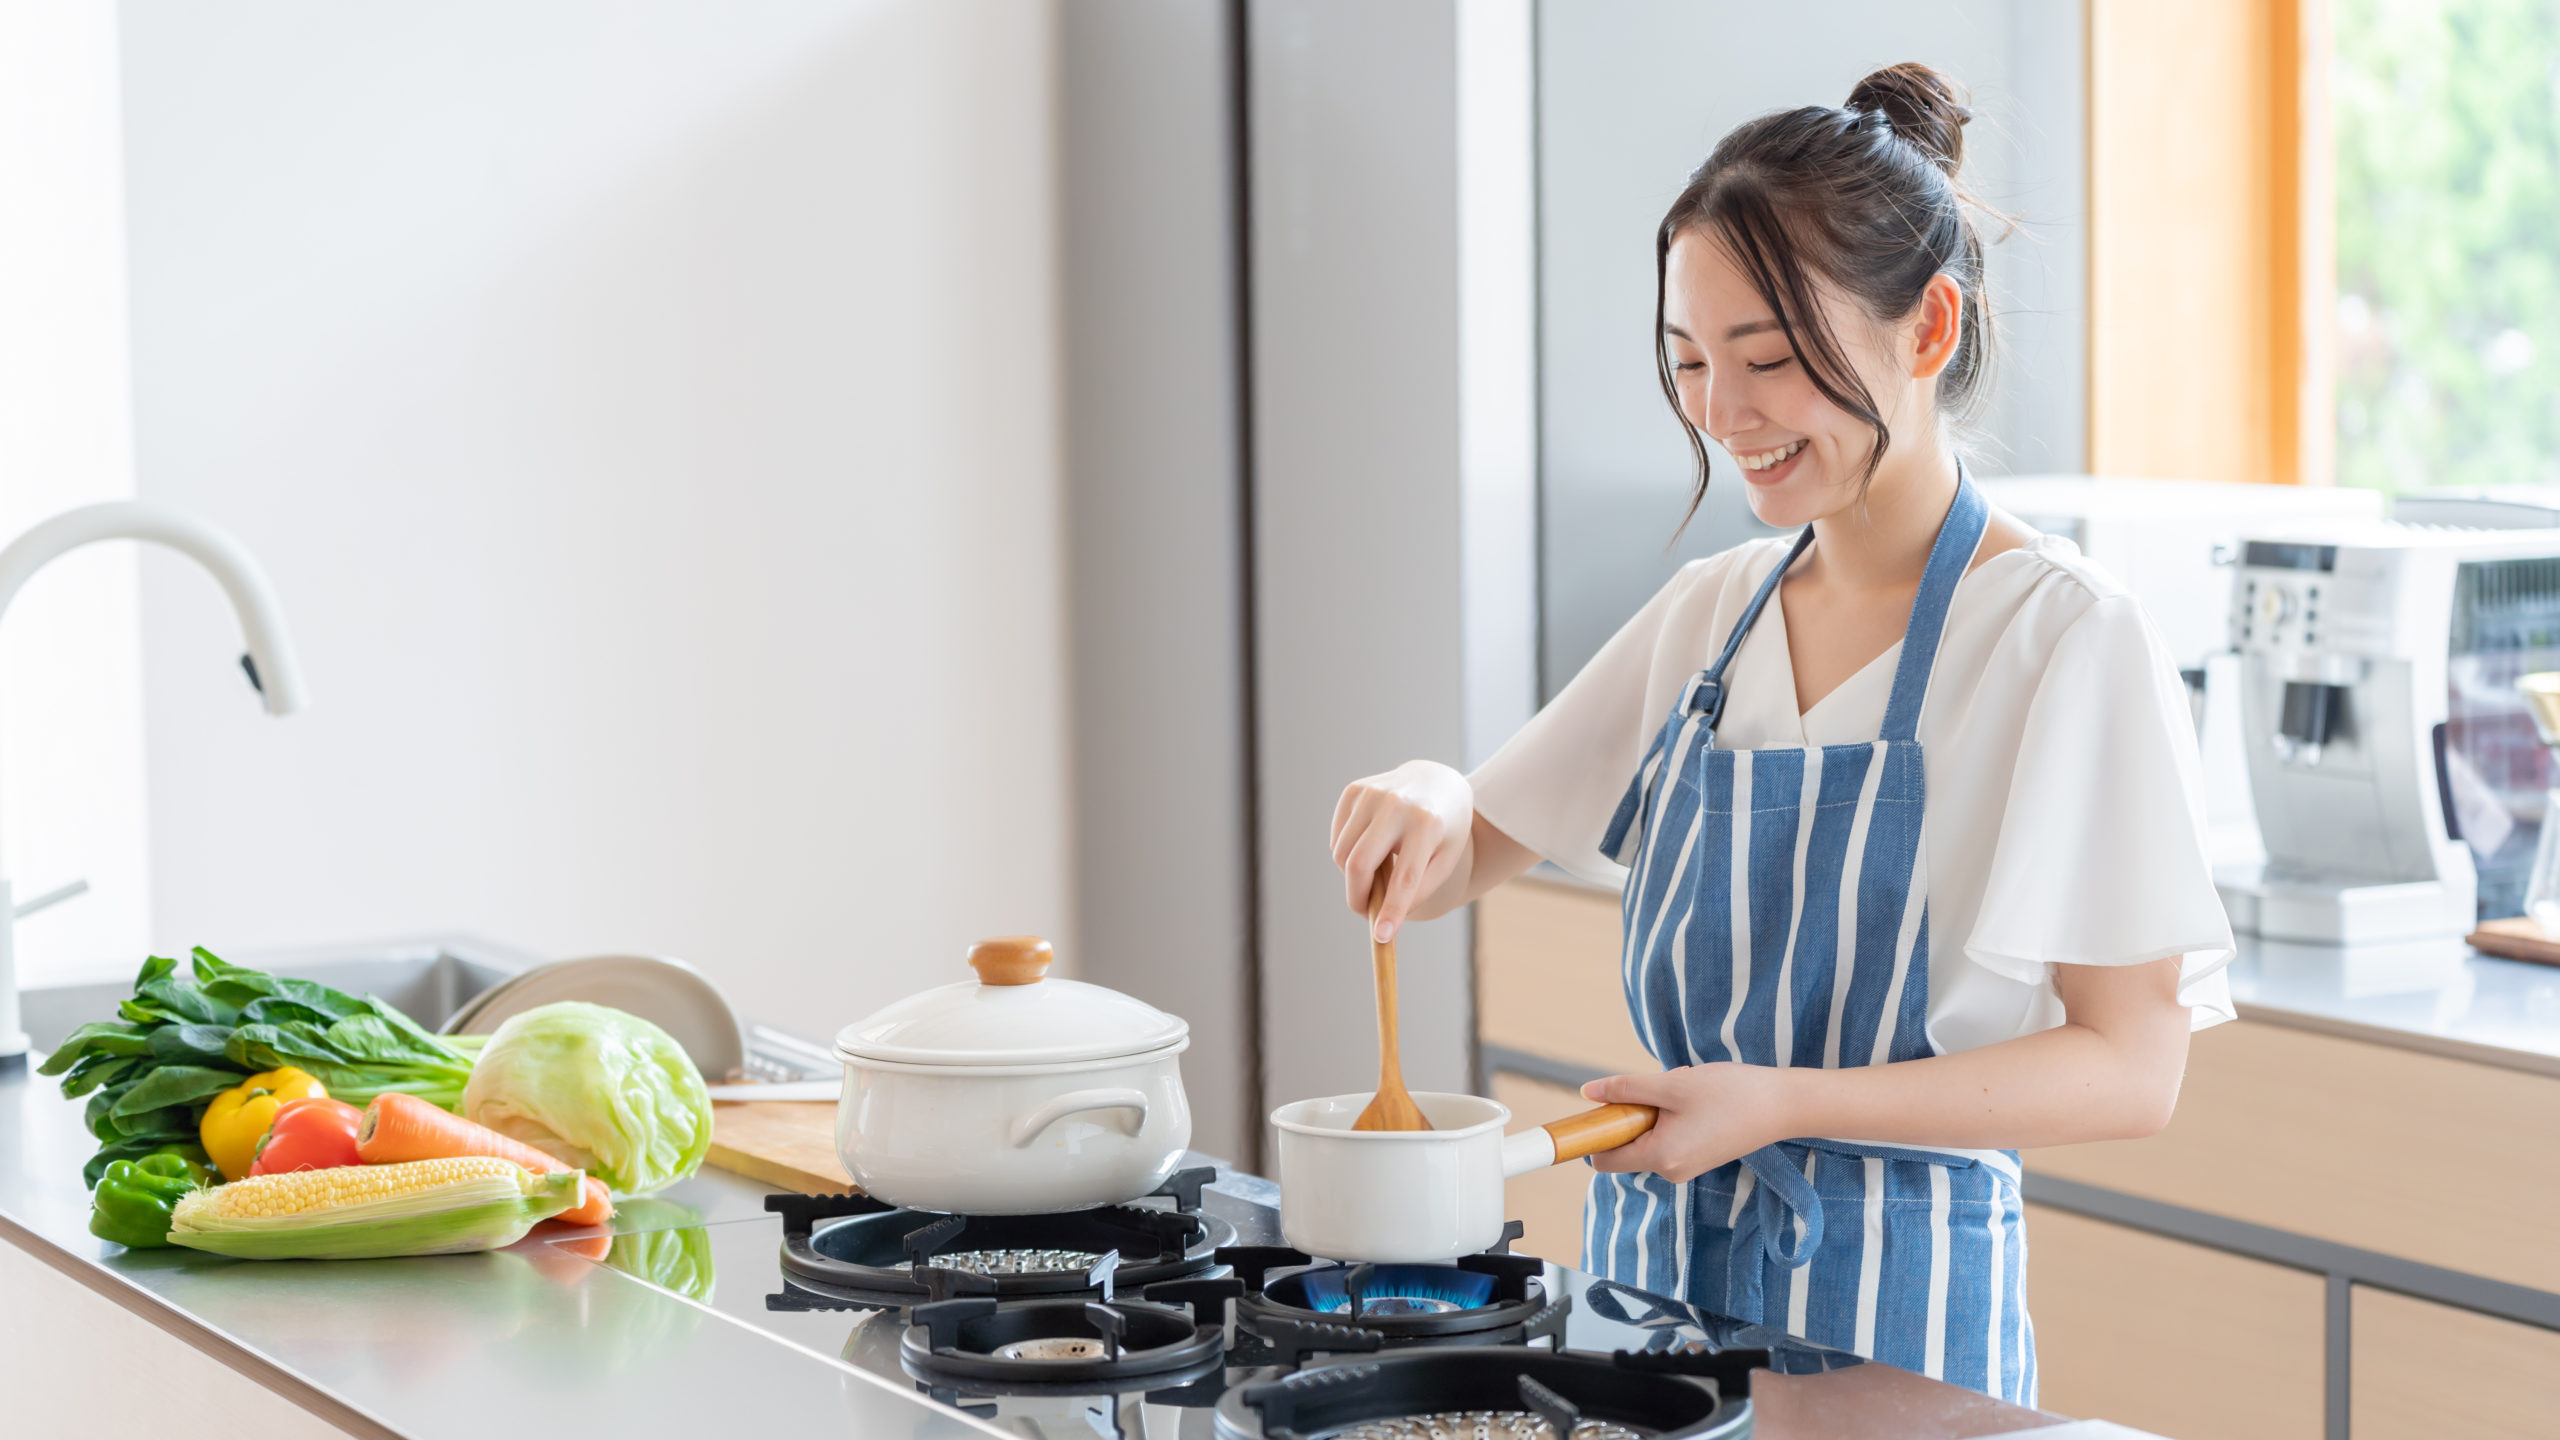 attractive-asian-woman-cooking-kitchen-1813462303